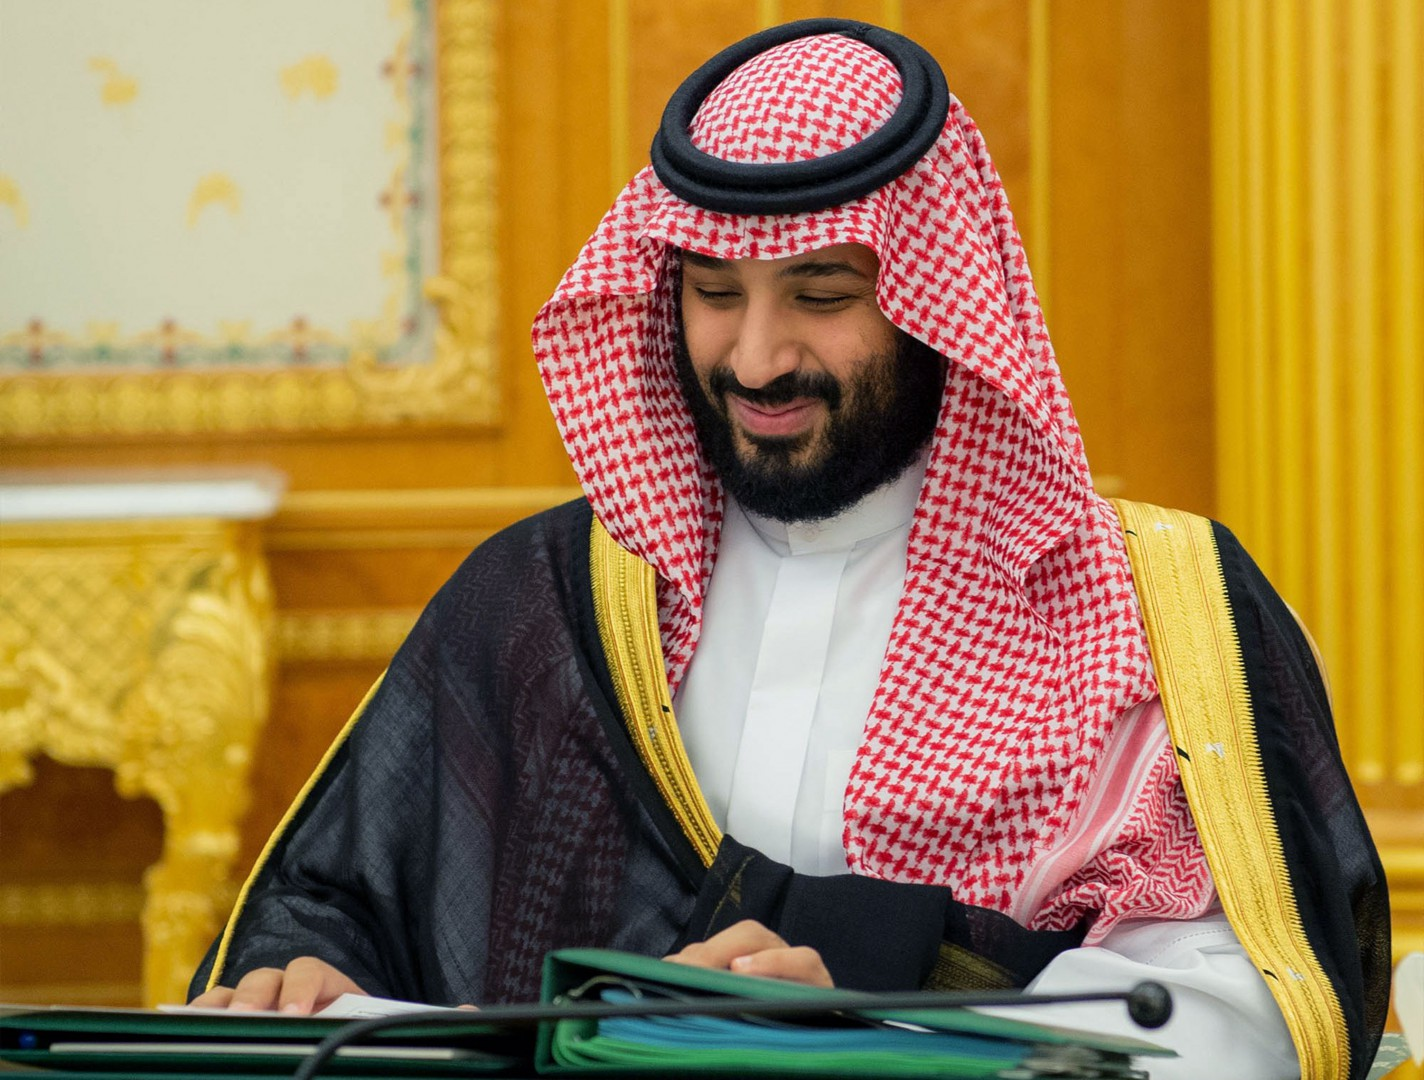 """A handout picture provided by the Saudi Press Agency (SPA) on December 18, 2018 shows Saudi Crown Prince Mohammed bin Salman attending the 2019 budget meeting in Riyadh. - Saudi Arabia announced its 2019 budget projecting a $35 billion shortfall, amounting to a deficit for the sixth year in a row due to low oil prices. (Photo by STRINGER / various sources / AFP) / === RESTRICTED TO EDITORIAL USE - MANDATORY CREDIT """"AFP PHOTO / HO / SPA"""" - NO MARKETING NO ADVERTISING CAMPAIGNS - DISTRIBUTED AS A SERVICE TO CLIENTS ==="""